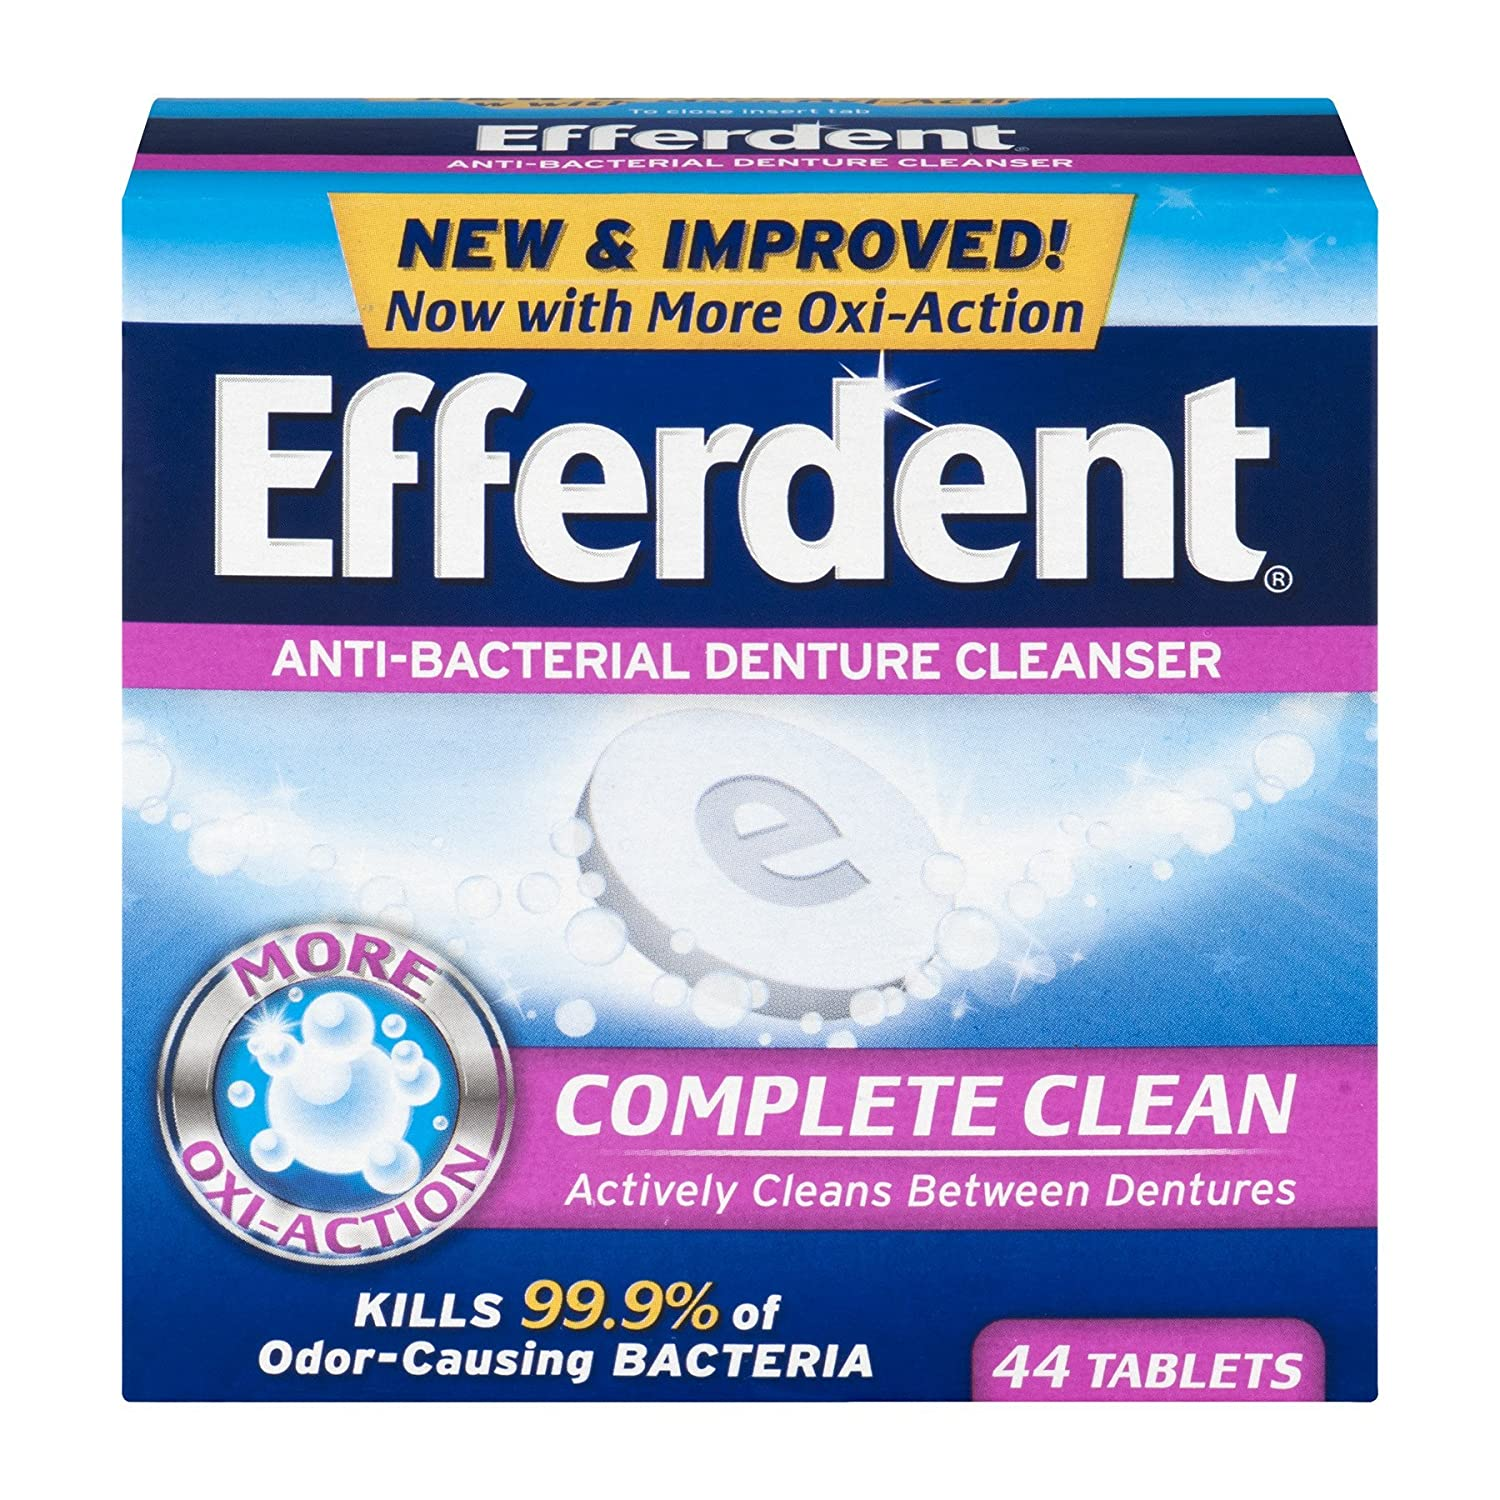 Efferdent Anti-Bacterial Denture Cleanser Tablets, 40 Count Medtech Product Inc. 1001